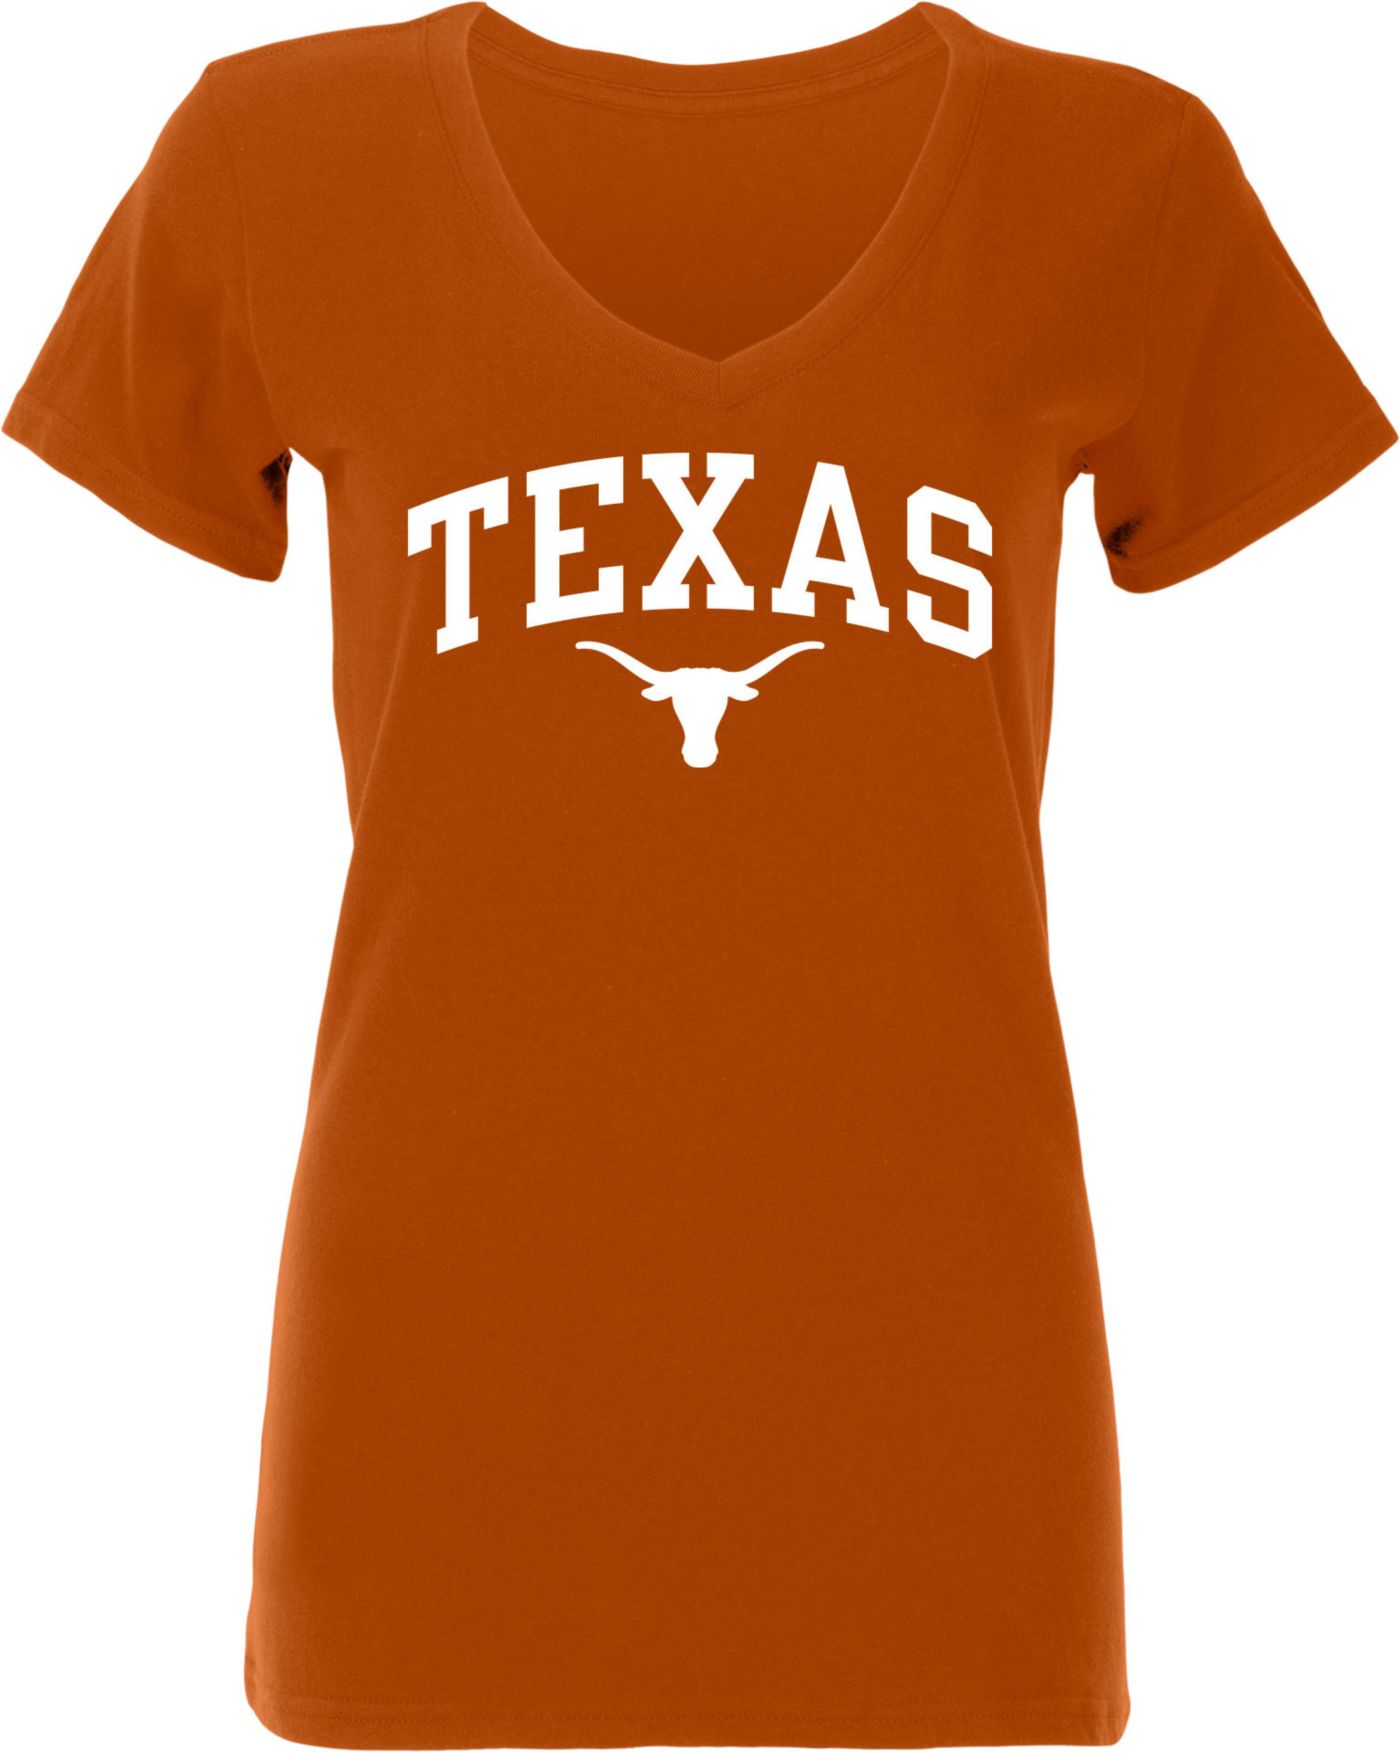 University of Texas Authentic Apparel Women's Texas Longhorns Burnt Orange Arch V-Neck T-Shirt